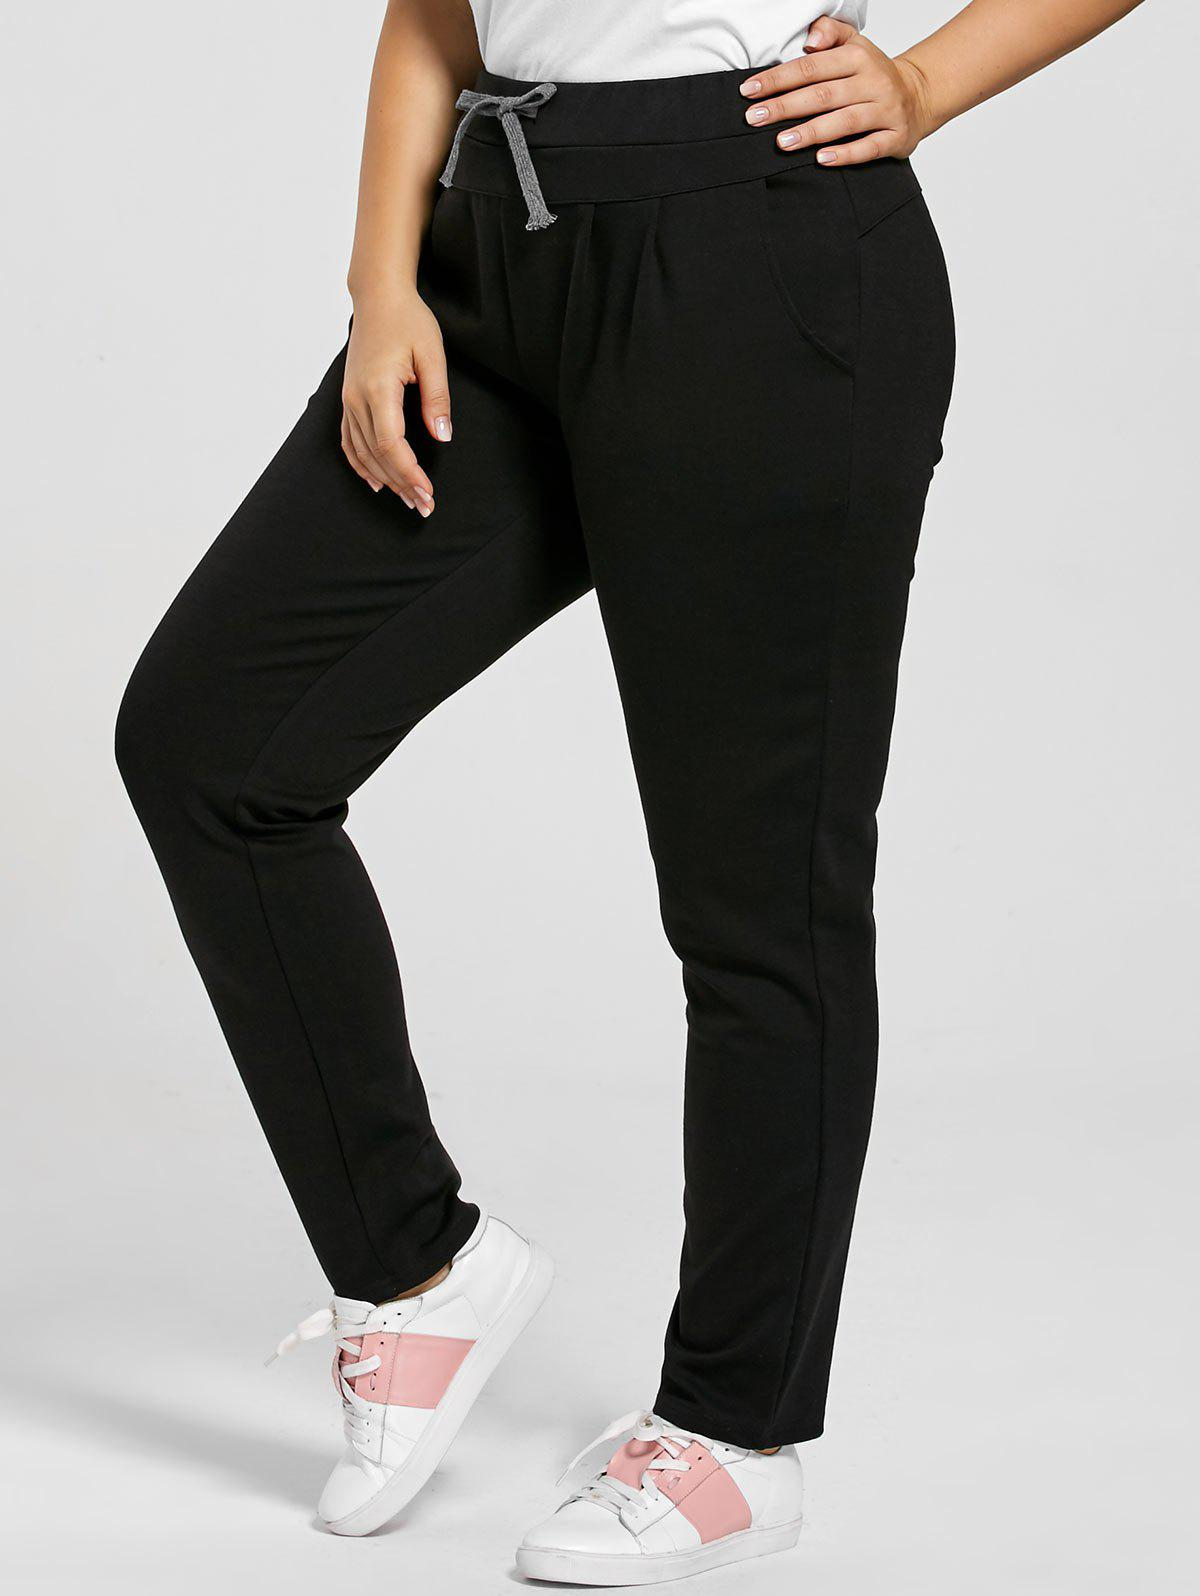 Drawstring Waist Skinny Plus Size PantsWOMEN<br><br>Size: 5XL; Color: BLACK; Style: Casual; Length: Normal; Material: Polyester; Fit Type: Regular; Waist Type: Mid; Closure Type: Drawstring; Pattern Type: Solid; Pant Style: Pencil Pants; Weight: 0.6400kg; Package Contents: 1 x Pants;